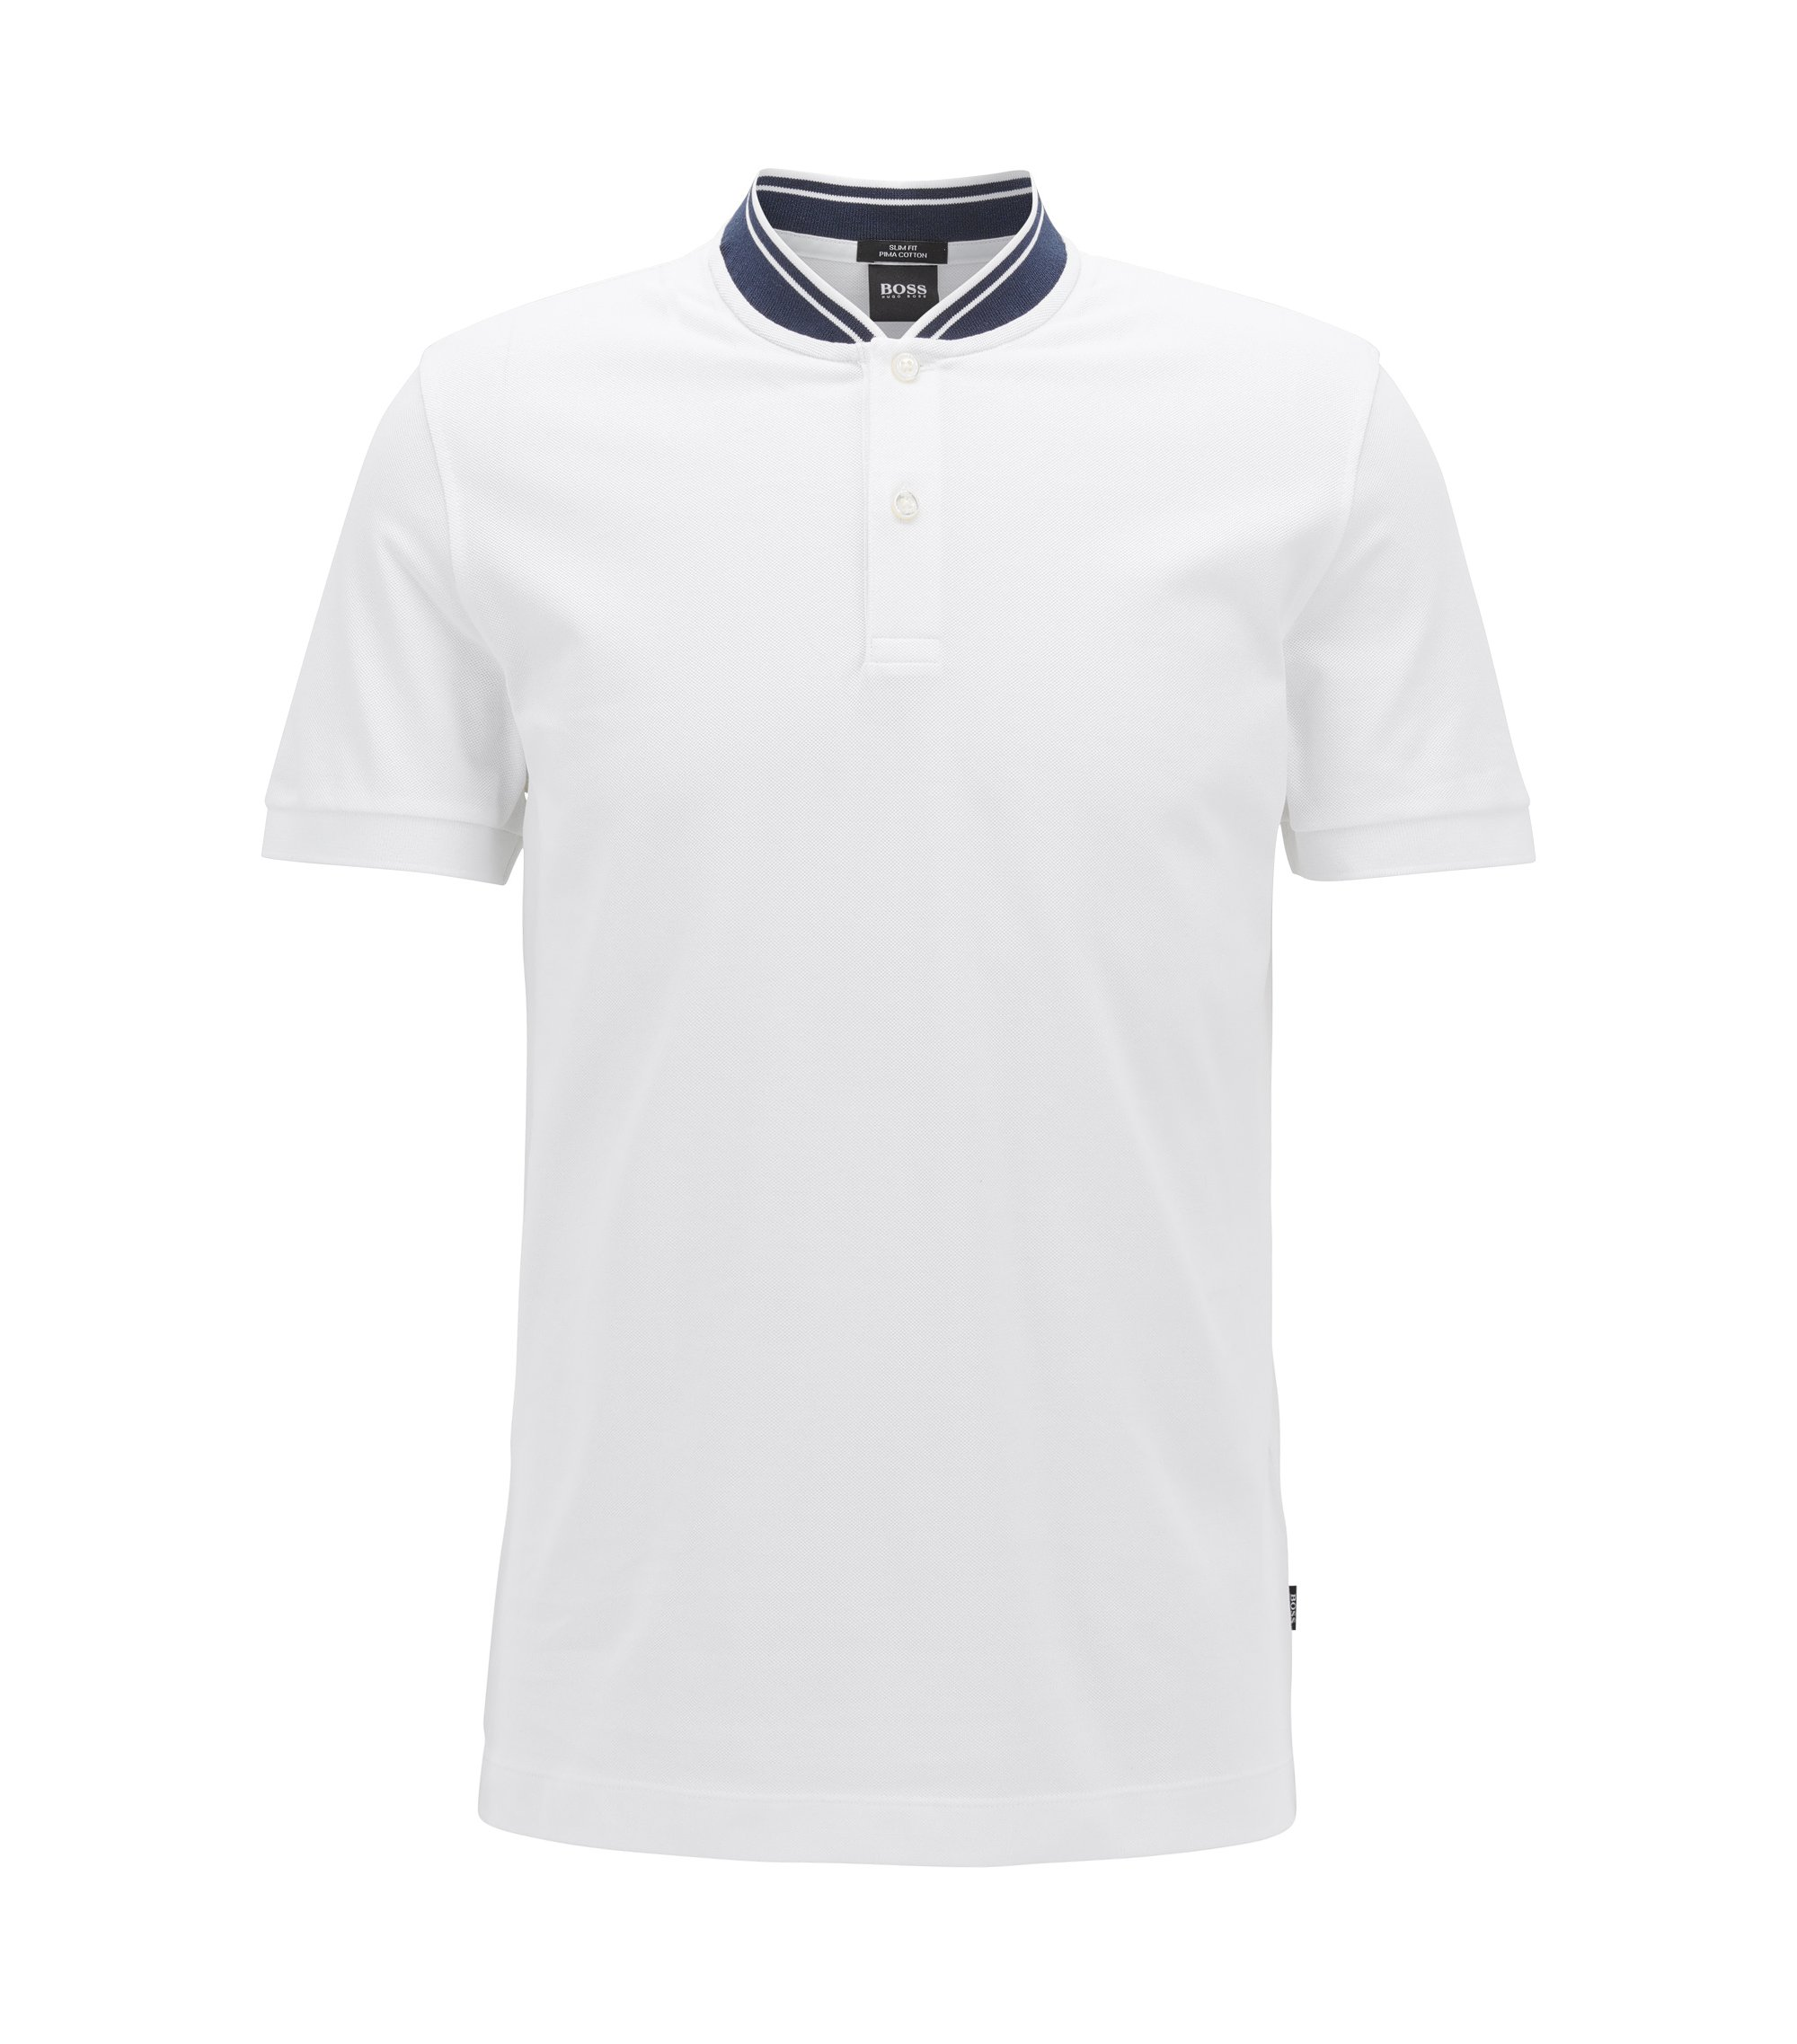 Piqué-cotton Henley shirt in a slim fit , White